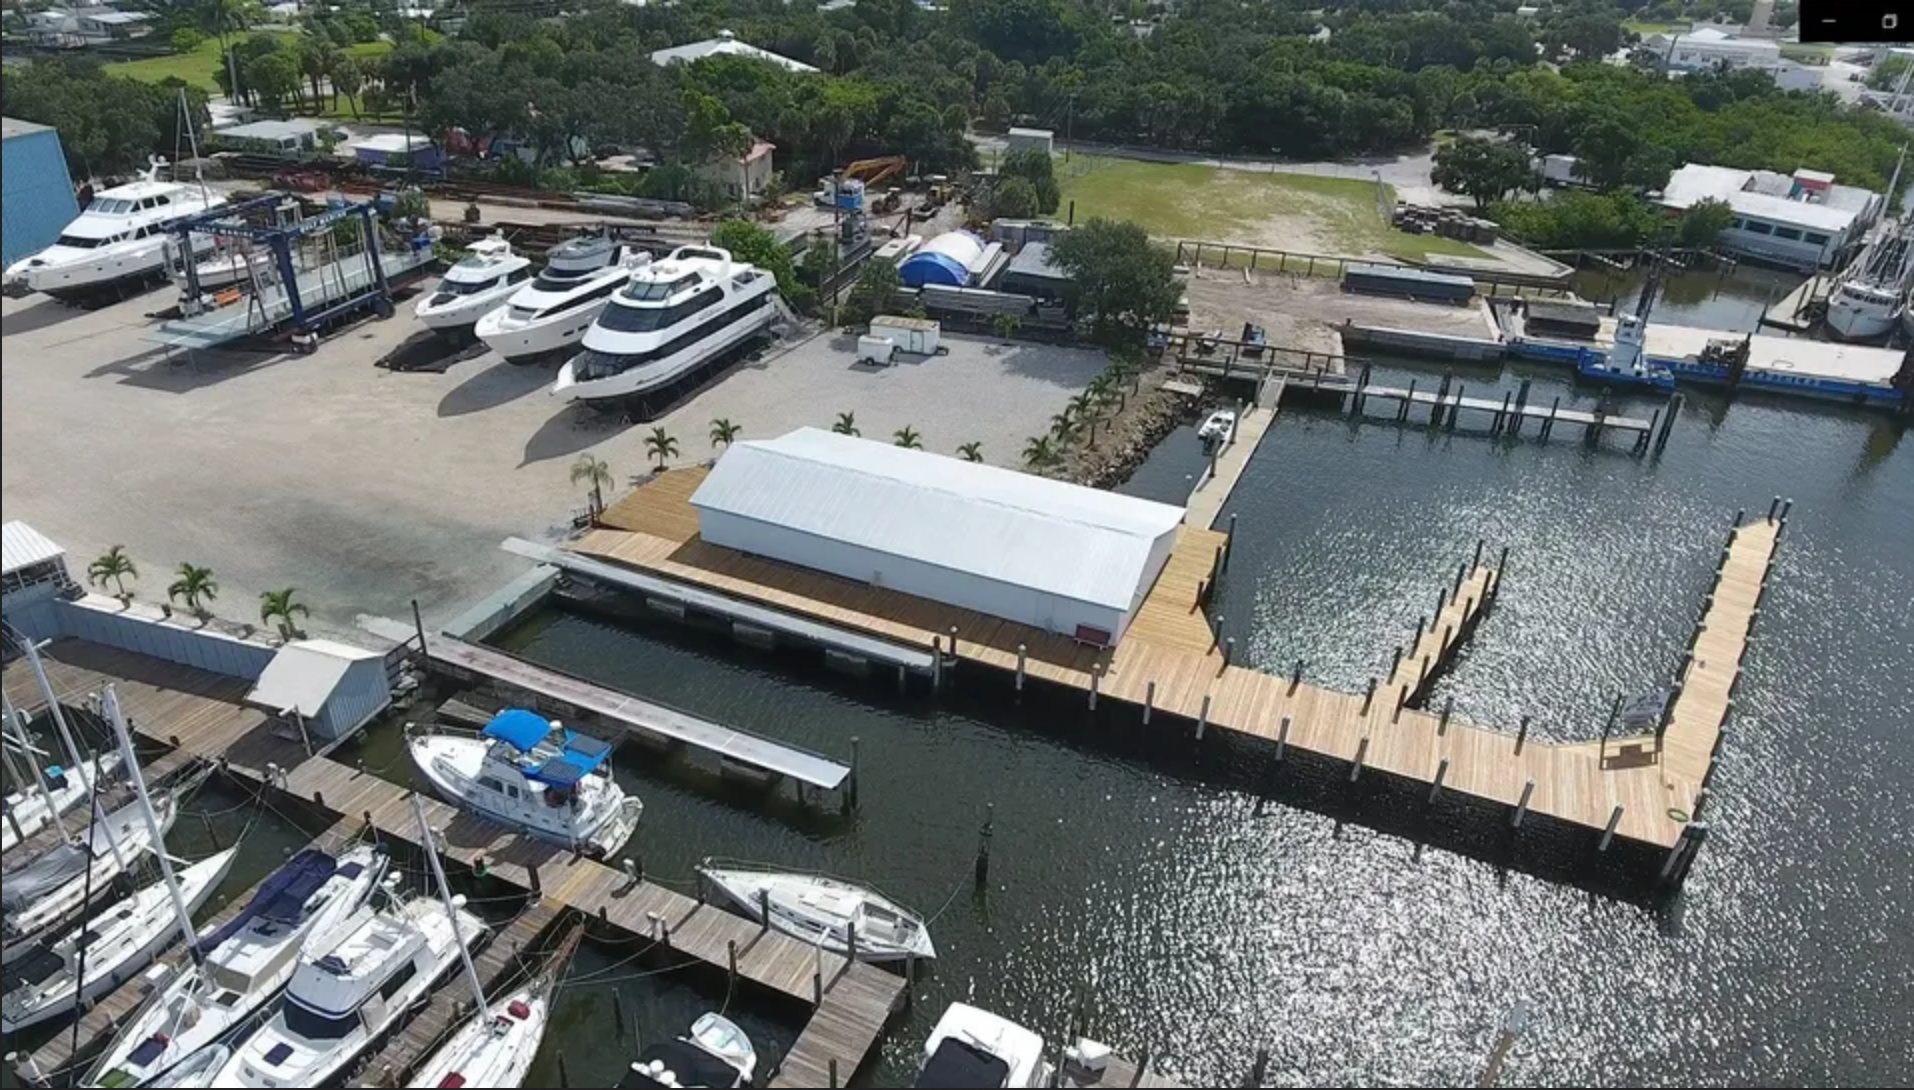 Gulf Marine Yachtworks Fort Myers Beach Intro | Boat Repair and Boat Maintenance